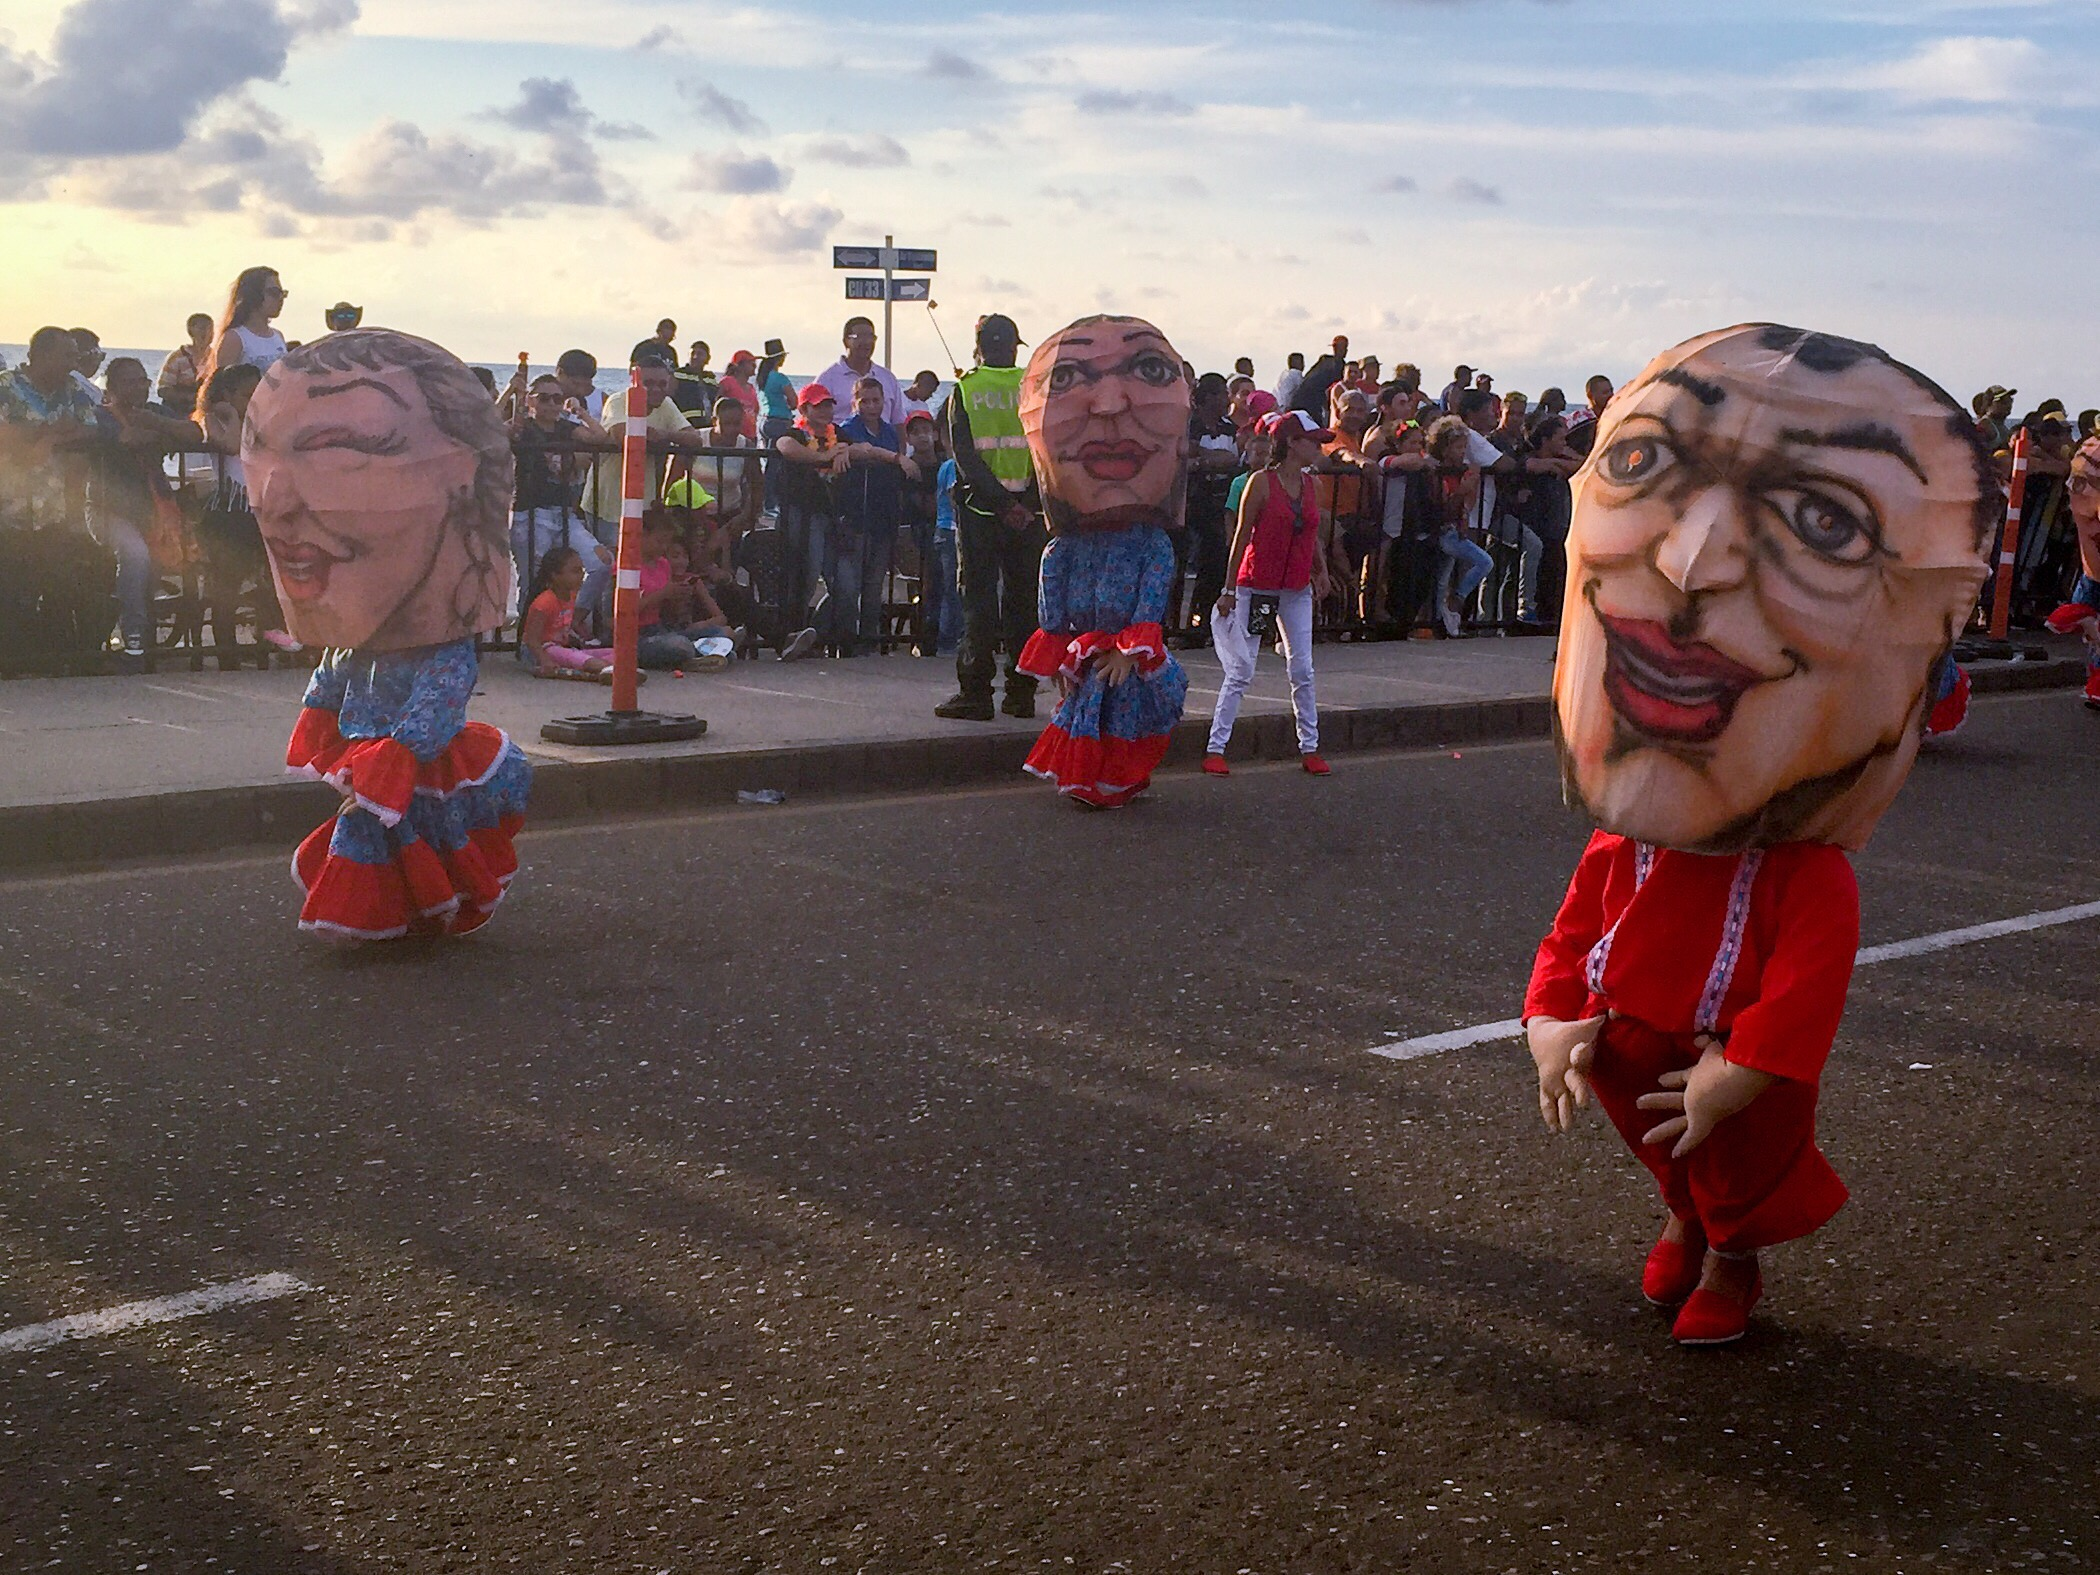 Little people with large heads bobbing on down the road.